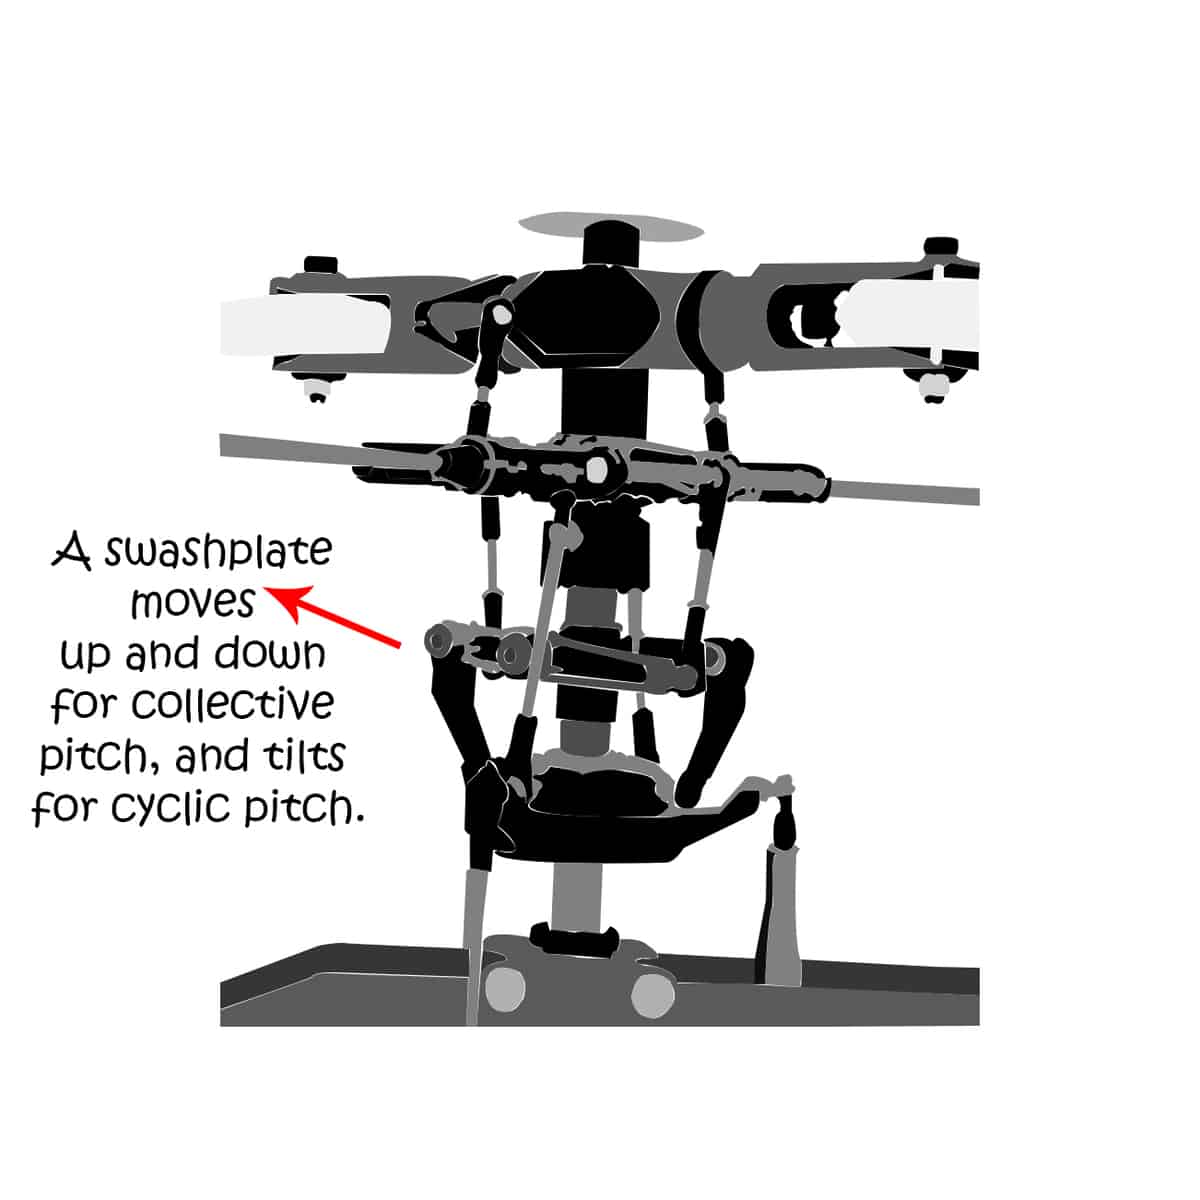 fly rc helicopters: swashplate